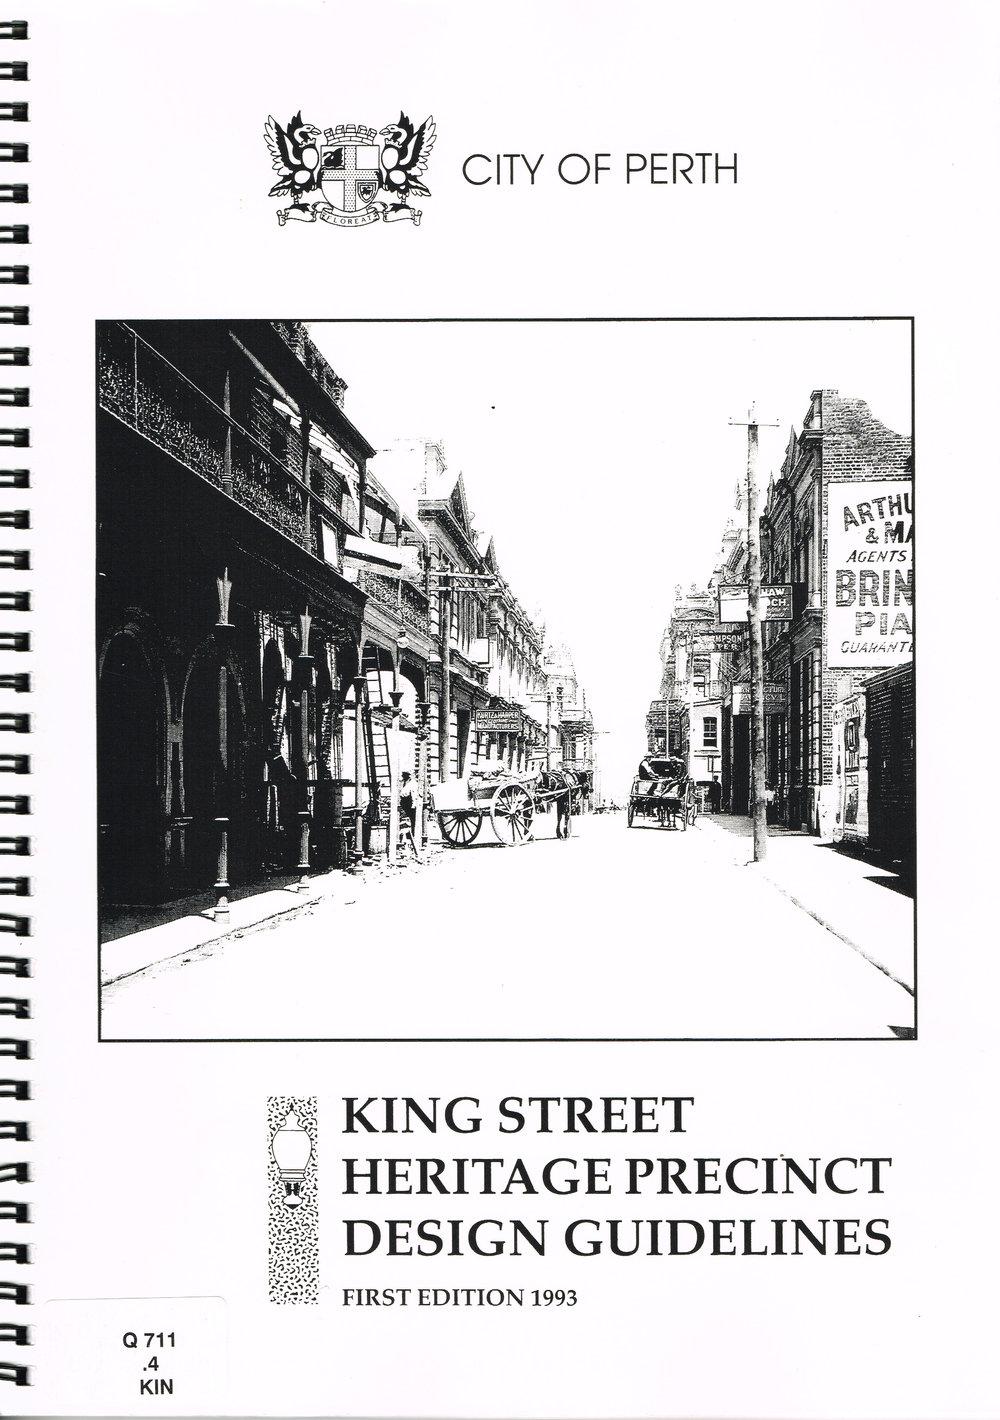 King Street Heritage Precinct Design Guidelines, First Edition 1993  City of Perth